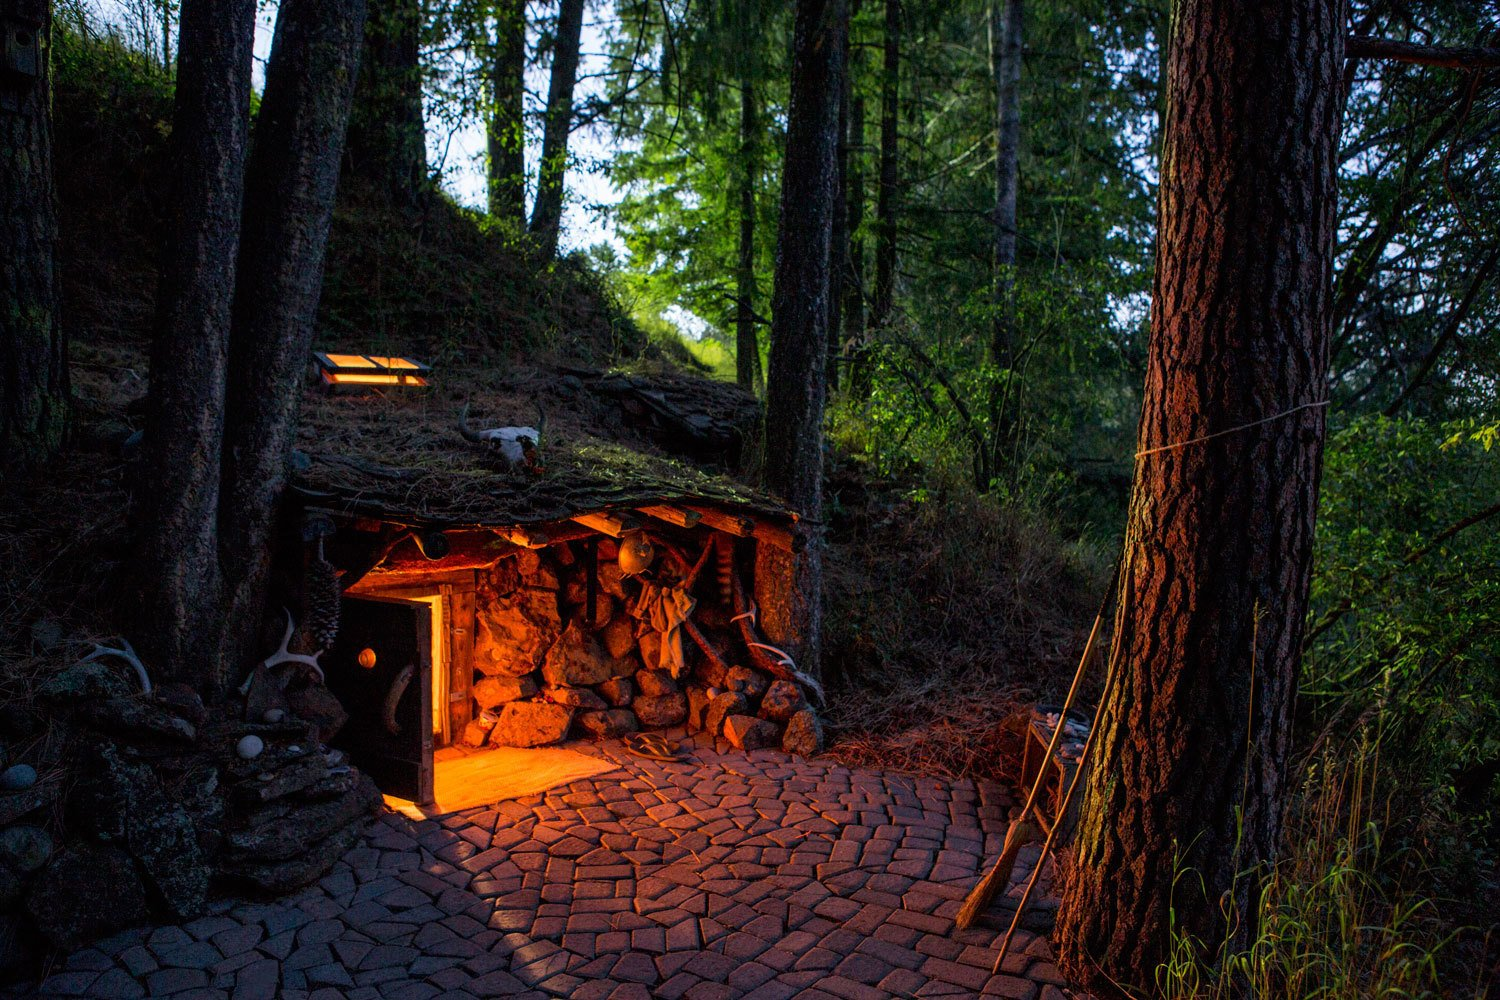 Some cabins are underground, or in the book's taxonomy, Earthen. Dan Price's former home was once broken into and the result was his commitment to live with fewer things, in nature. His hobbit-like home in Joseph, Oregon is complete with tunnels, crawlspaces, and a low-ceilinged bedroom. Using heavy-guage sheeting and wooden structures as roofing elements, he covered the space with dirt to facilitate natural growth above.  Daring Hillside Homes by Diana Budds from Tour 8 Awesome Tiny Cabins Around the World